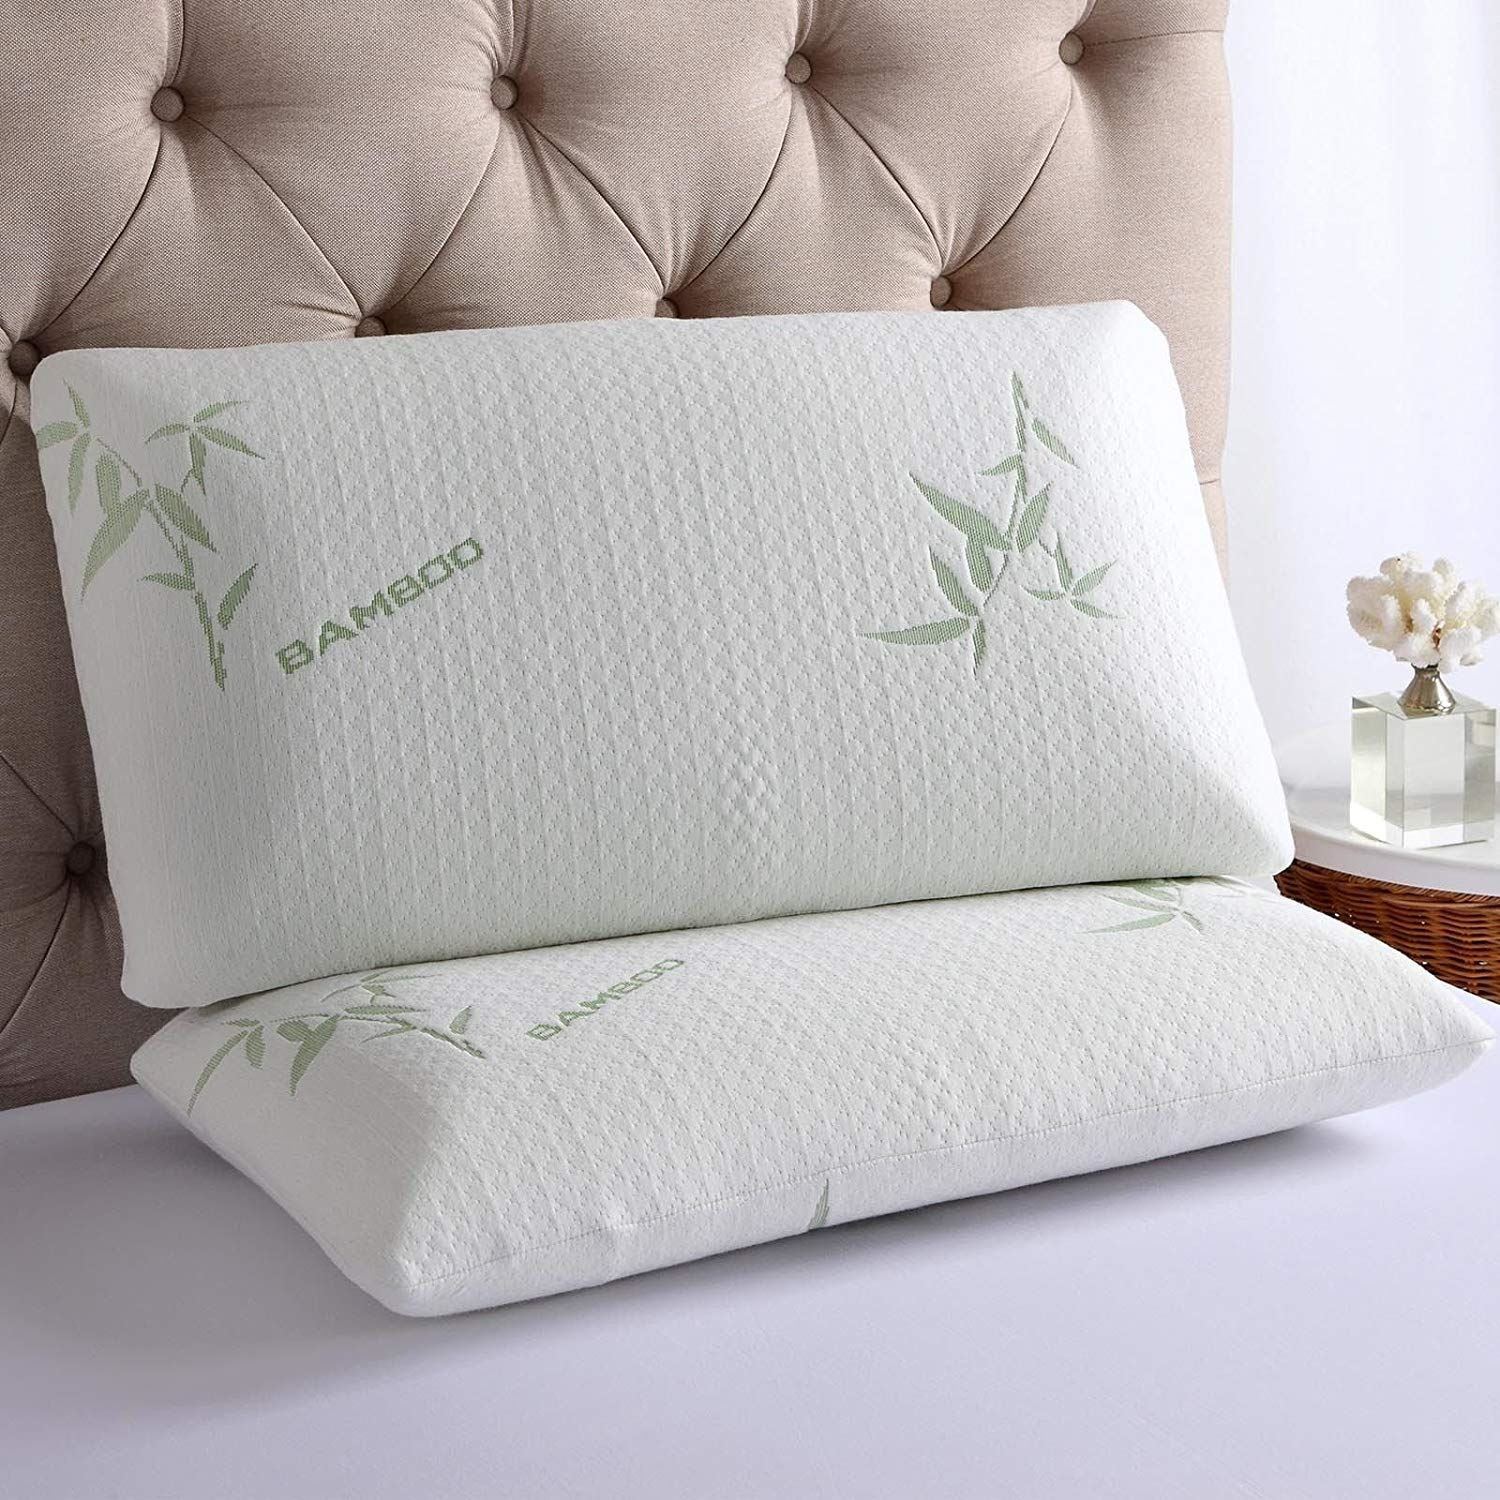 Luxury Bedding Bamboo Anti Bacterial Premium Support